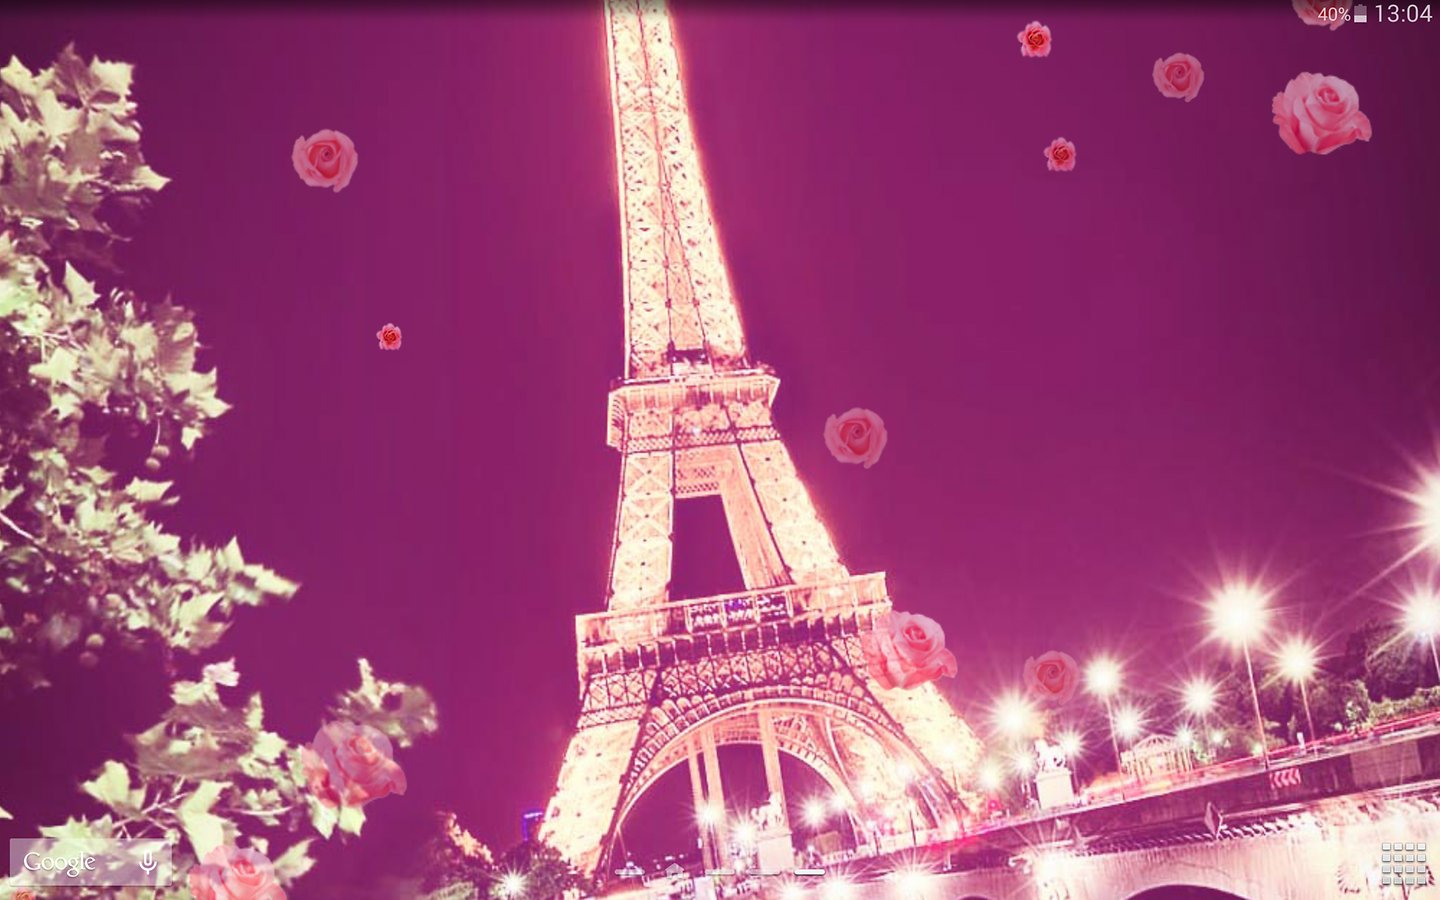 Romantic Paris Live Wallpaper   Android Apps and Tests   AndroidPIT 1440x900